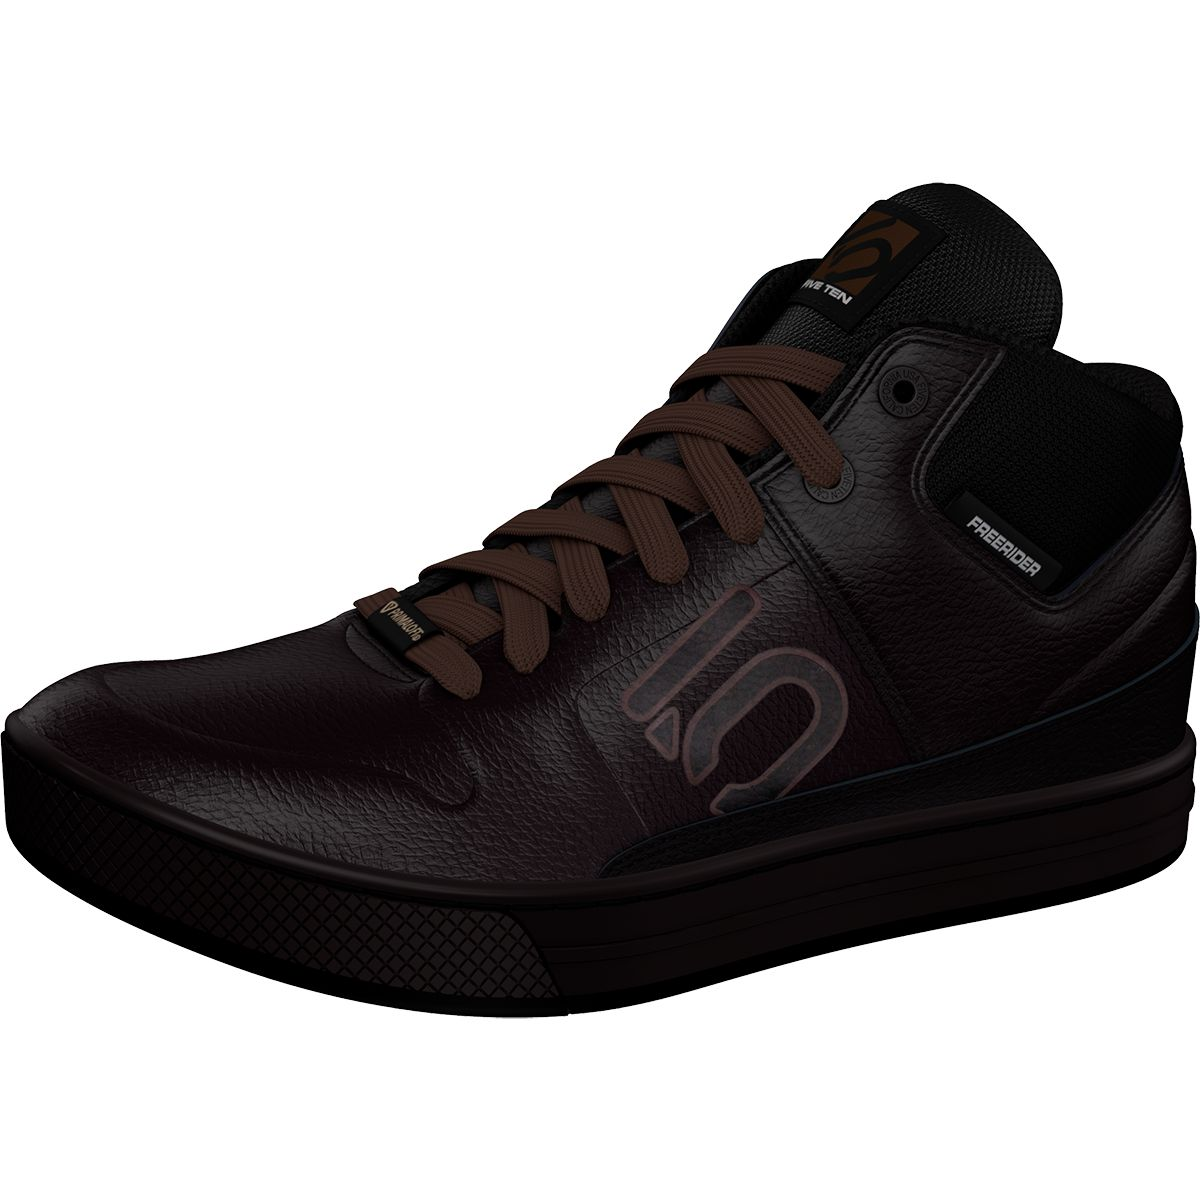 FREERIDER EPS MID Flat Pedal Schuhe